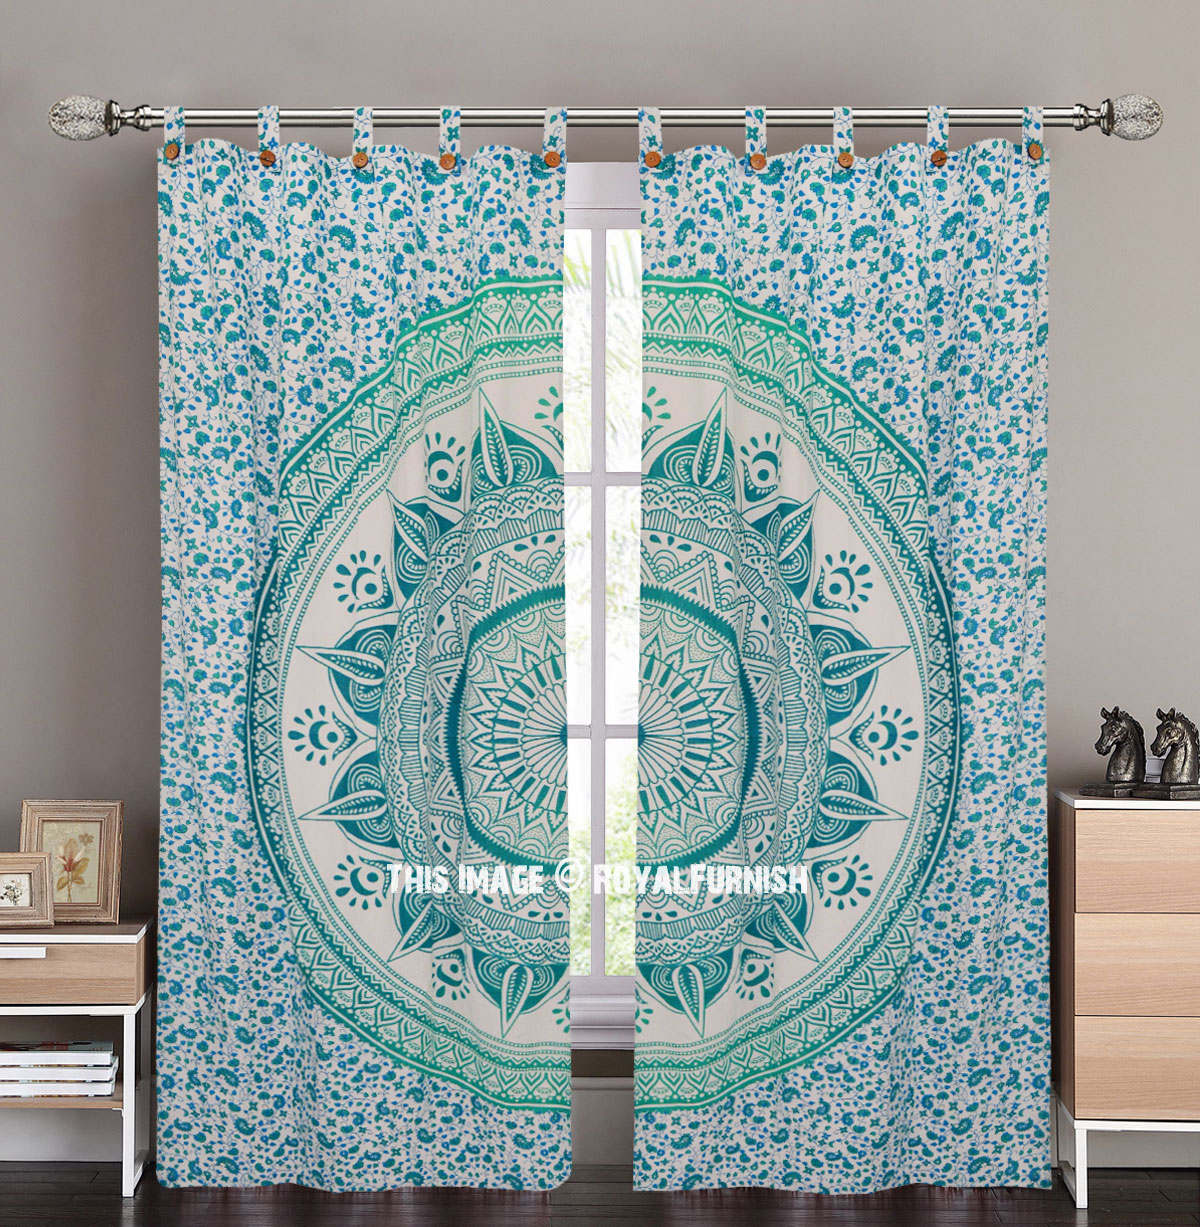 Sea Green Large Leafs Circle Ombre Tapestry Curtain Panel Pair Royalfurnish Com